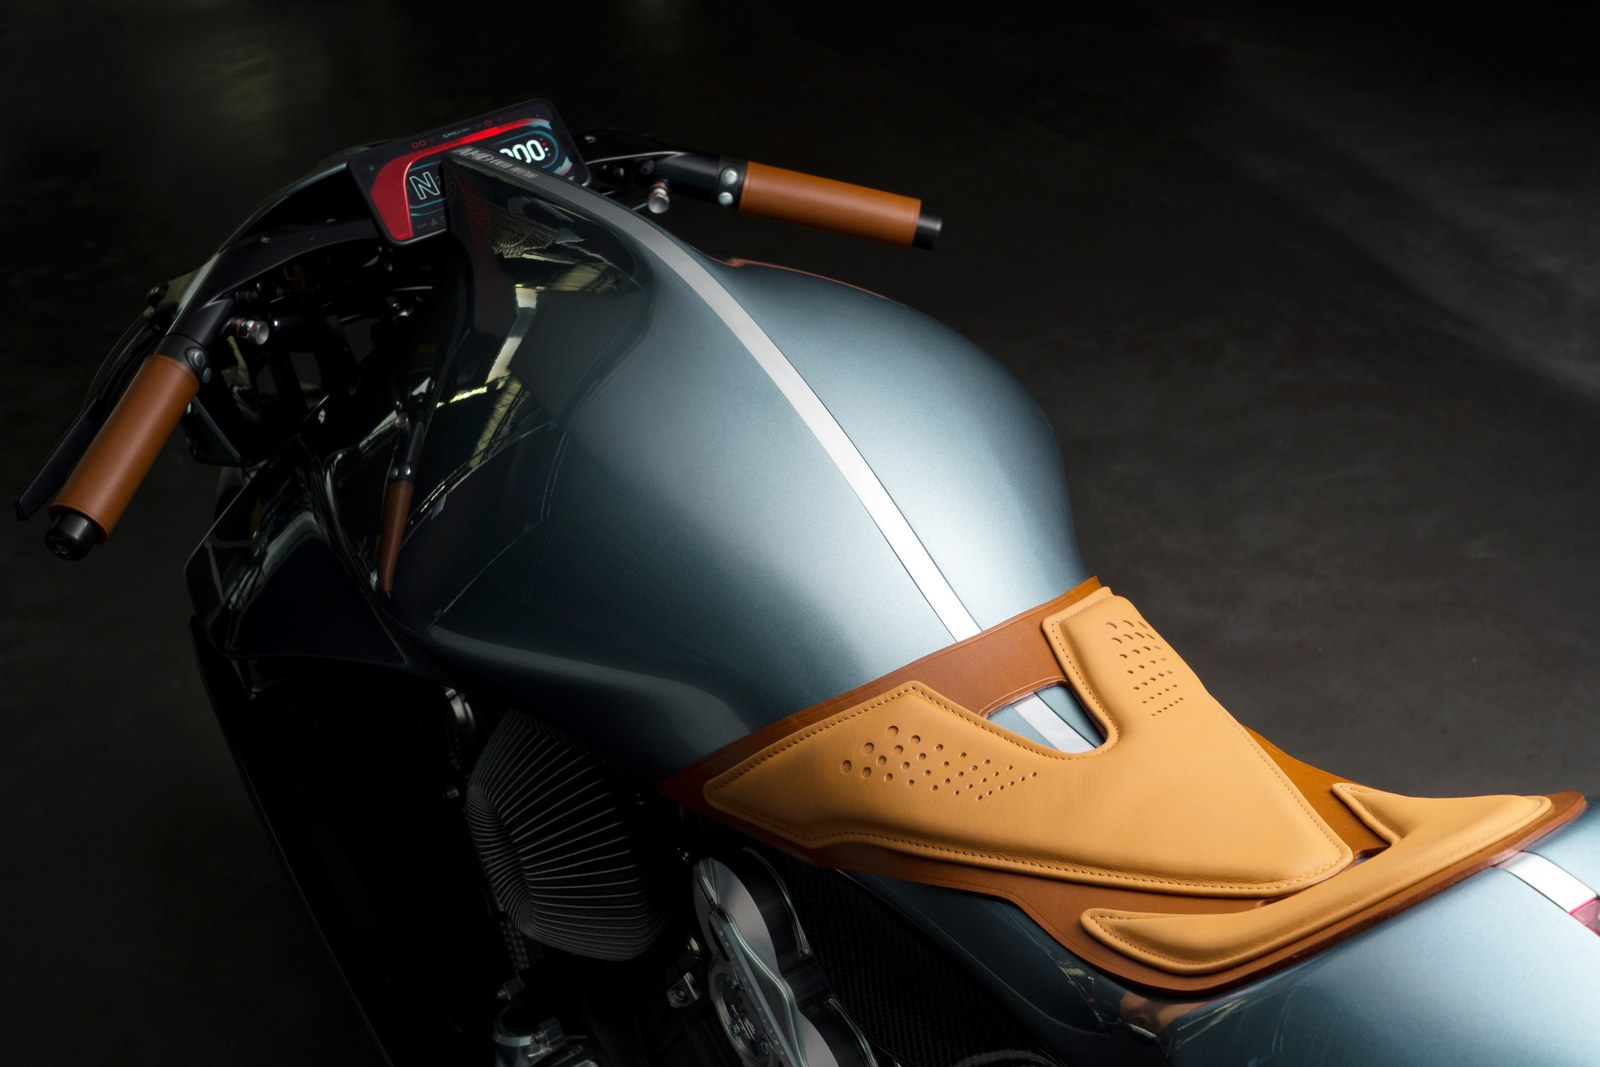 Aston Martin Builds Its Own Cool Motorcycle